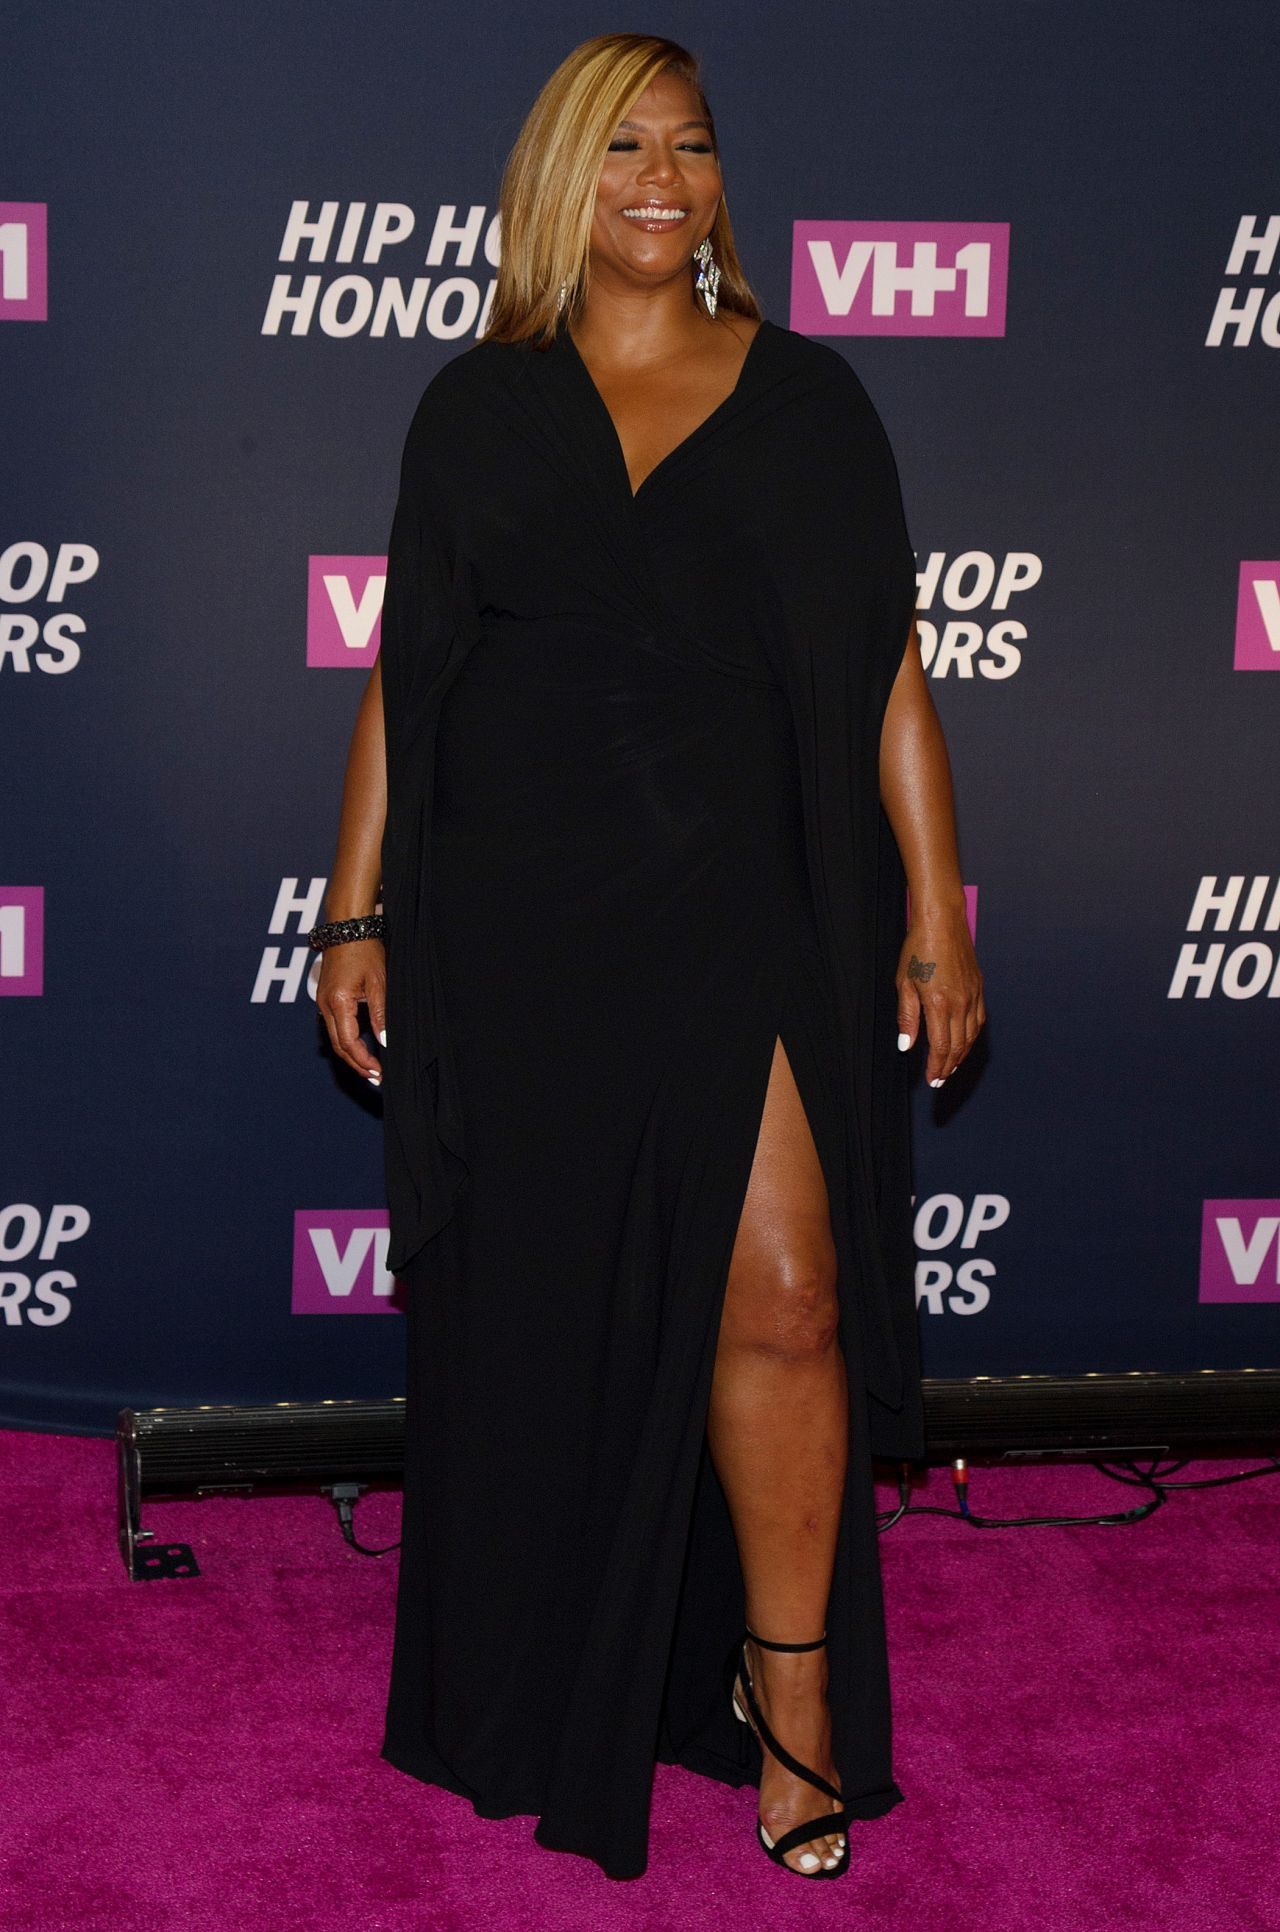 Queen Latifah Vh1 Hip Hop Honors In New York City July 2016